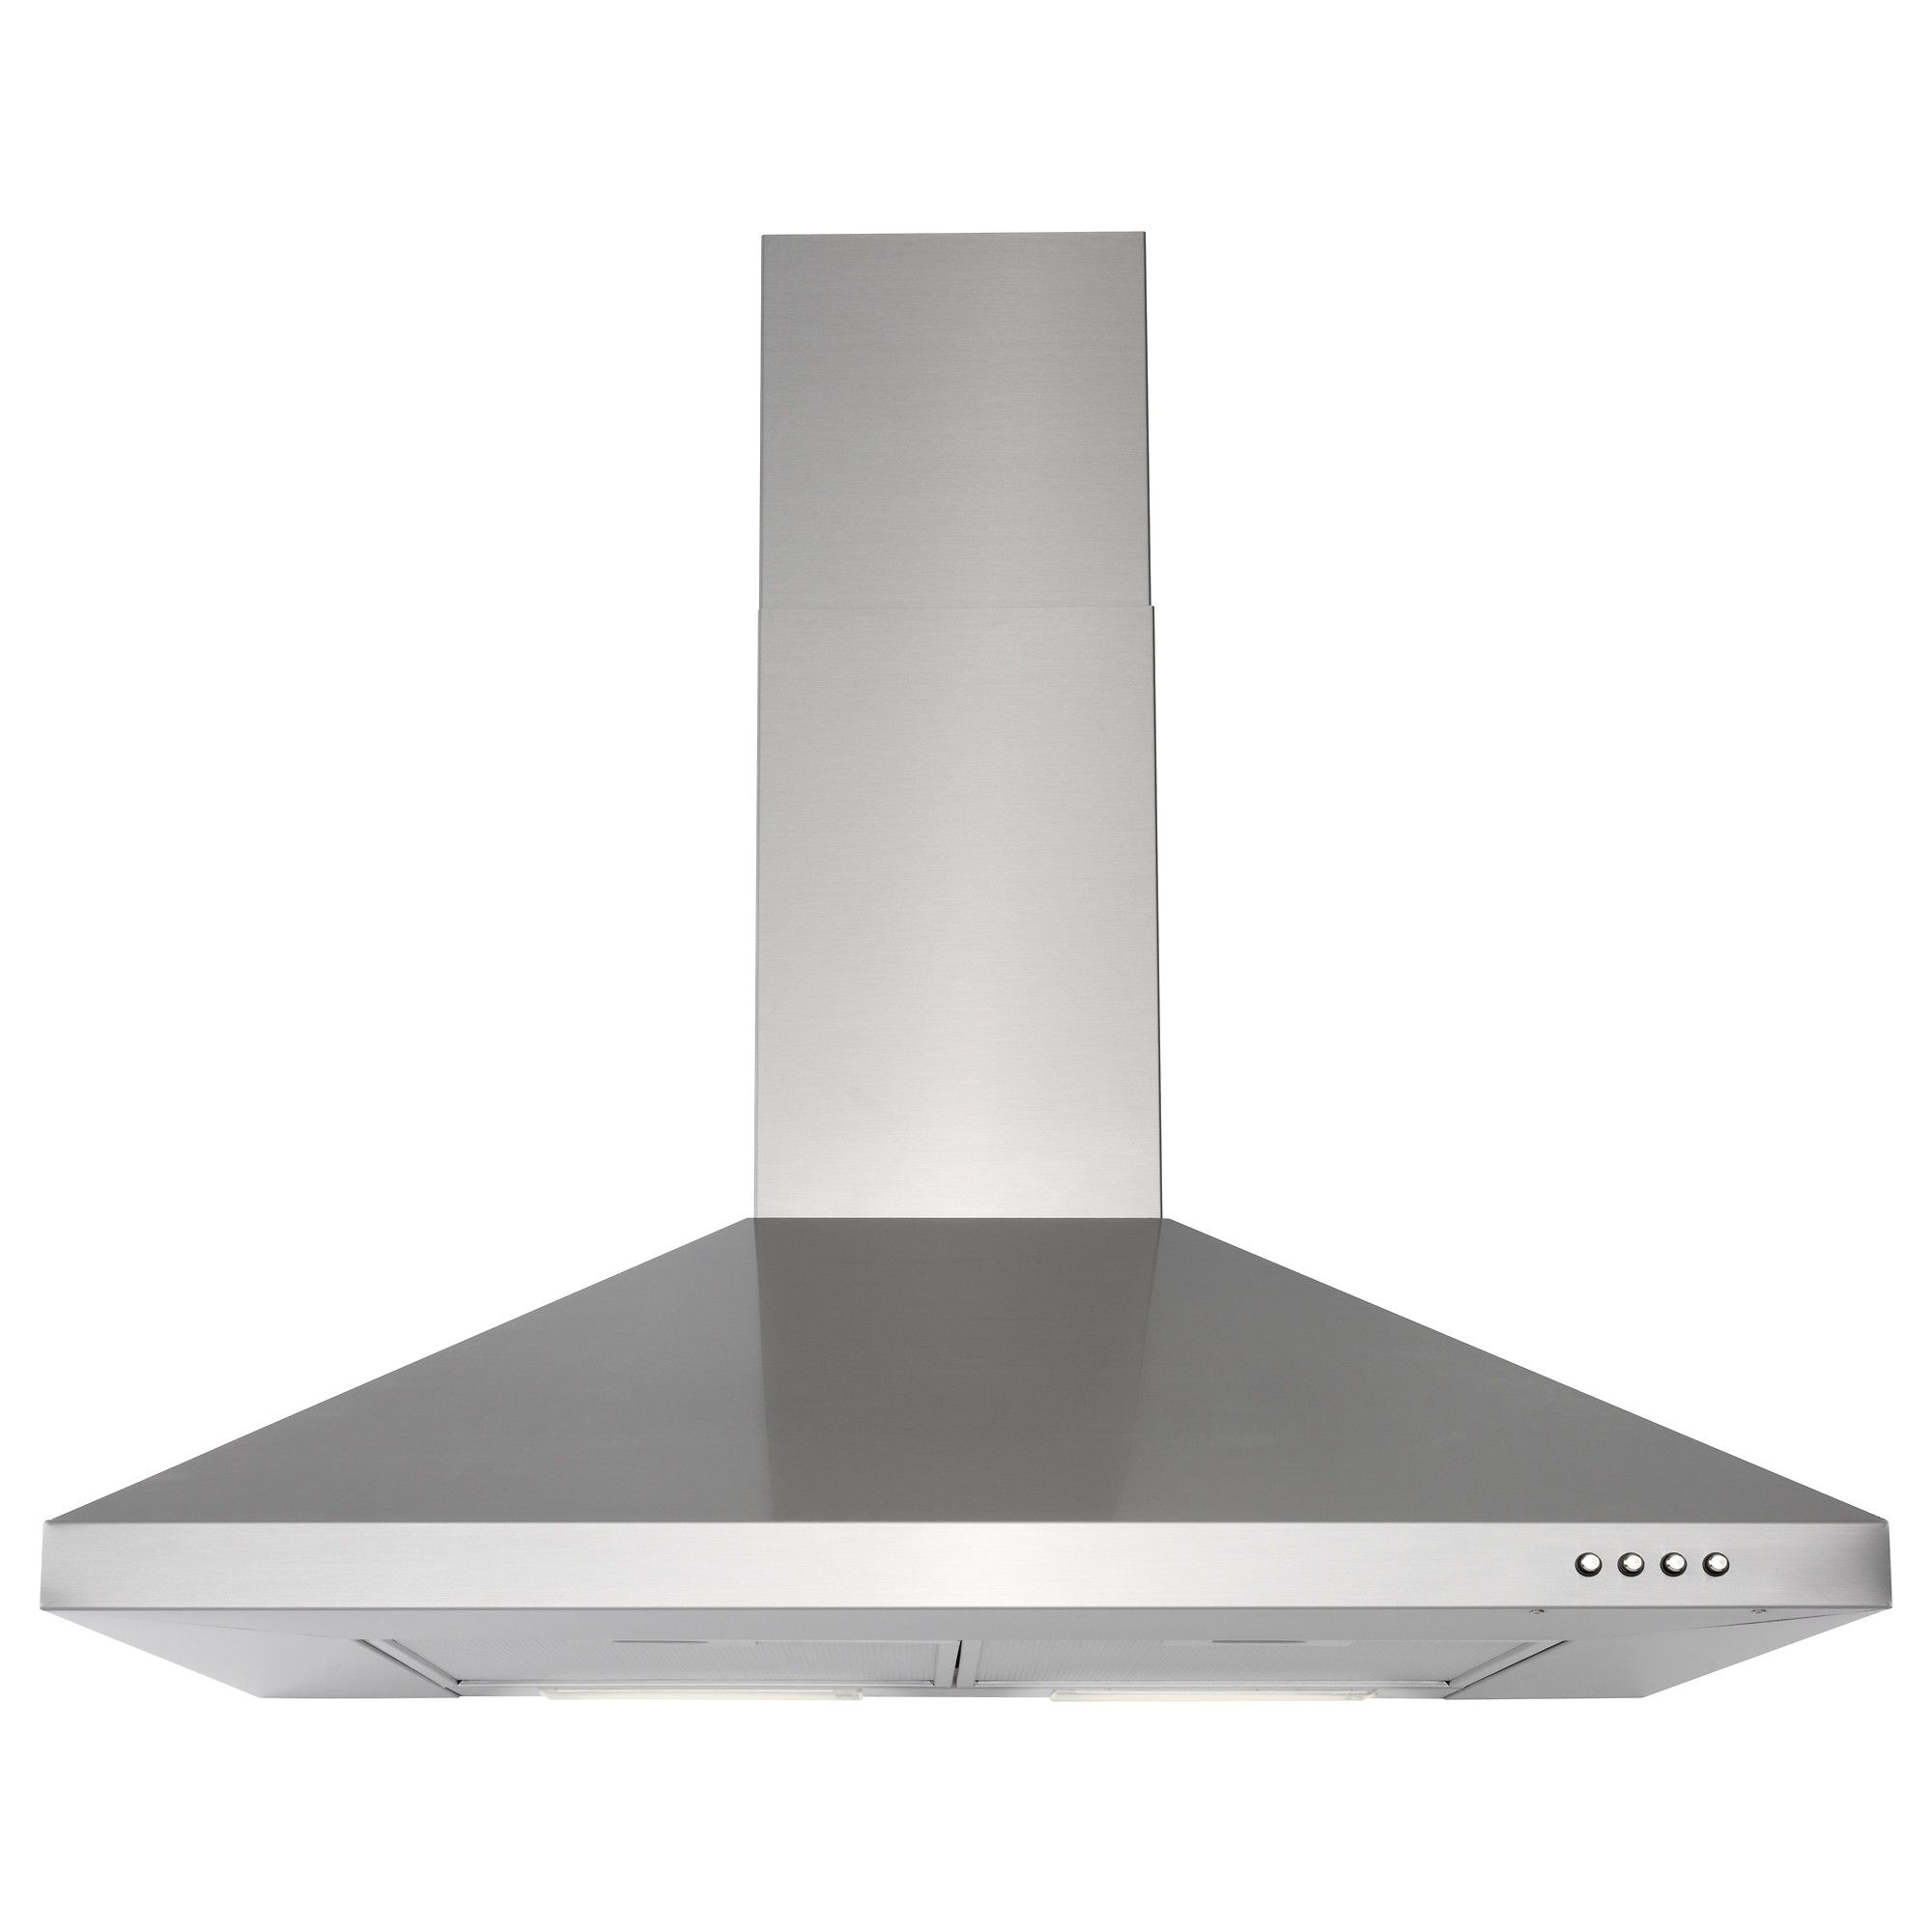 Us Furniture And Home Furnishings Ikea Range Hood Grand